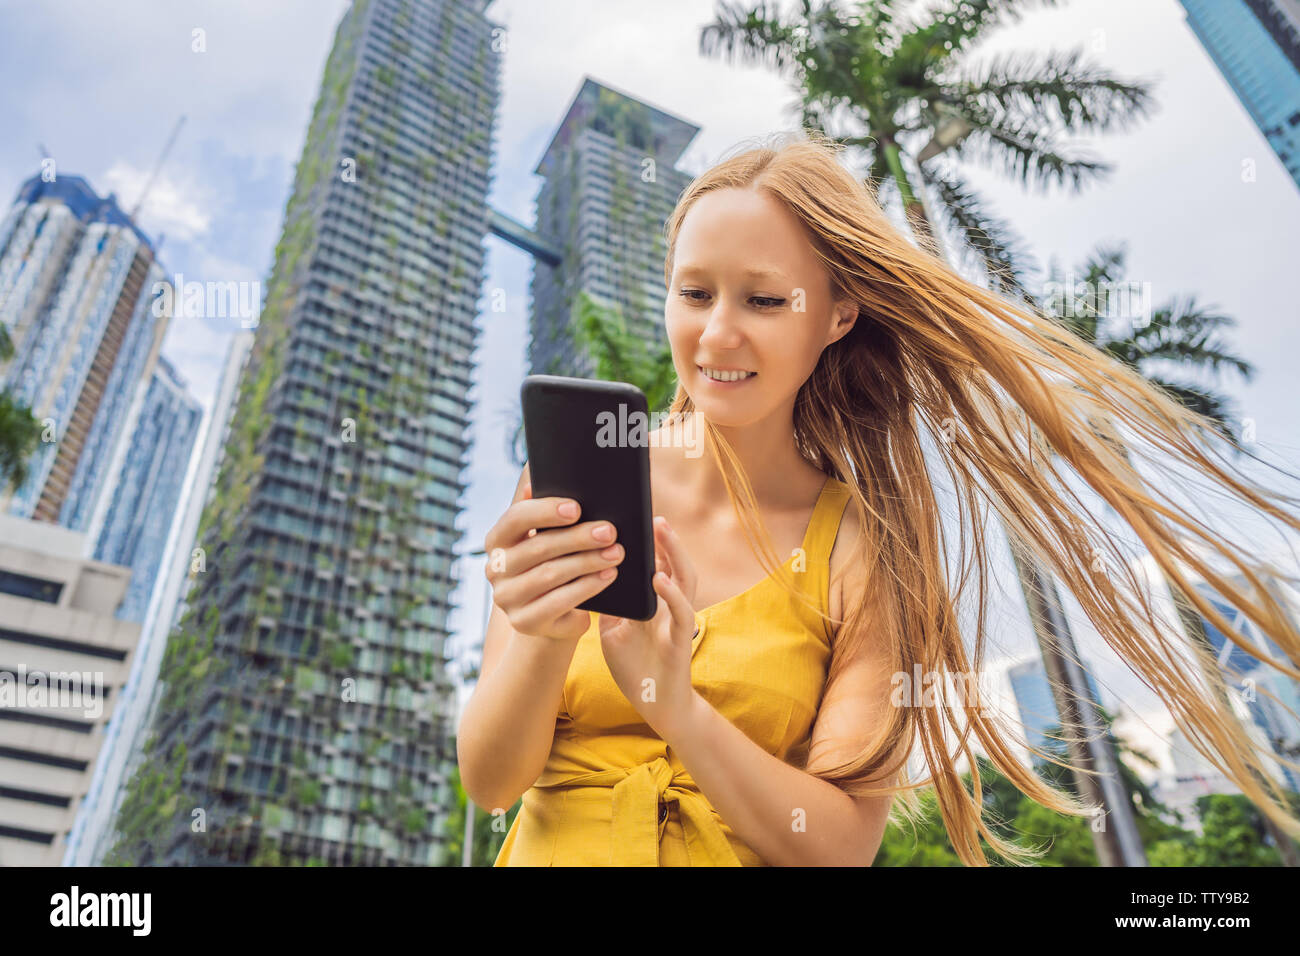 Woman Tourist using navigation app on the mobile phone. Navigation map on a smartphone in a big city - Stock Image